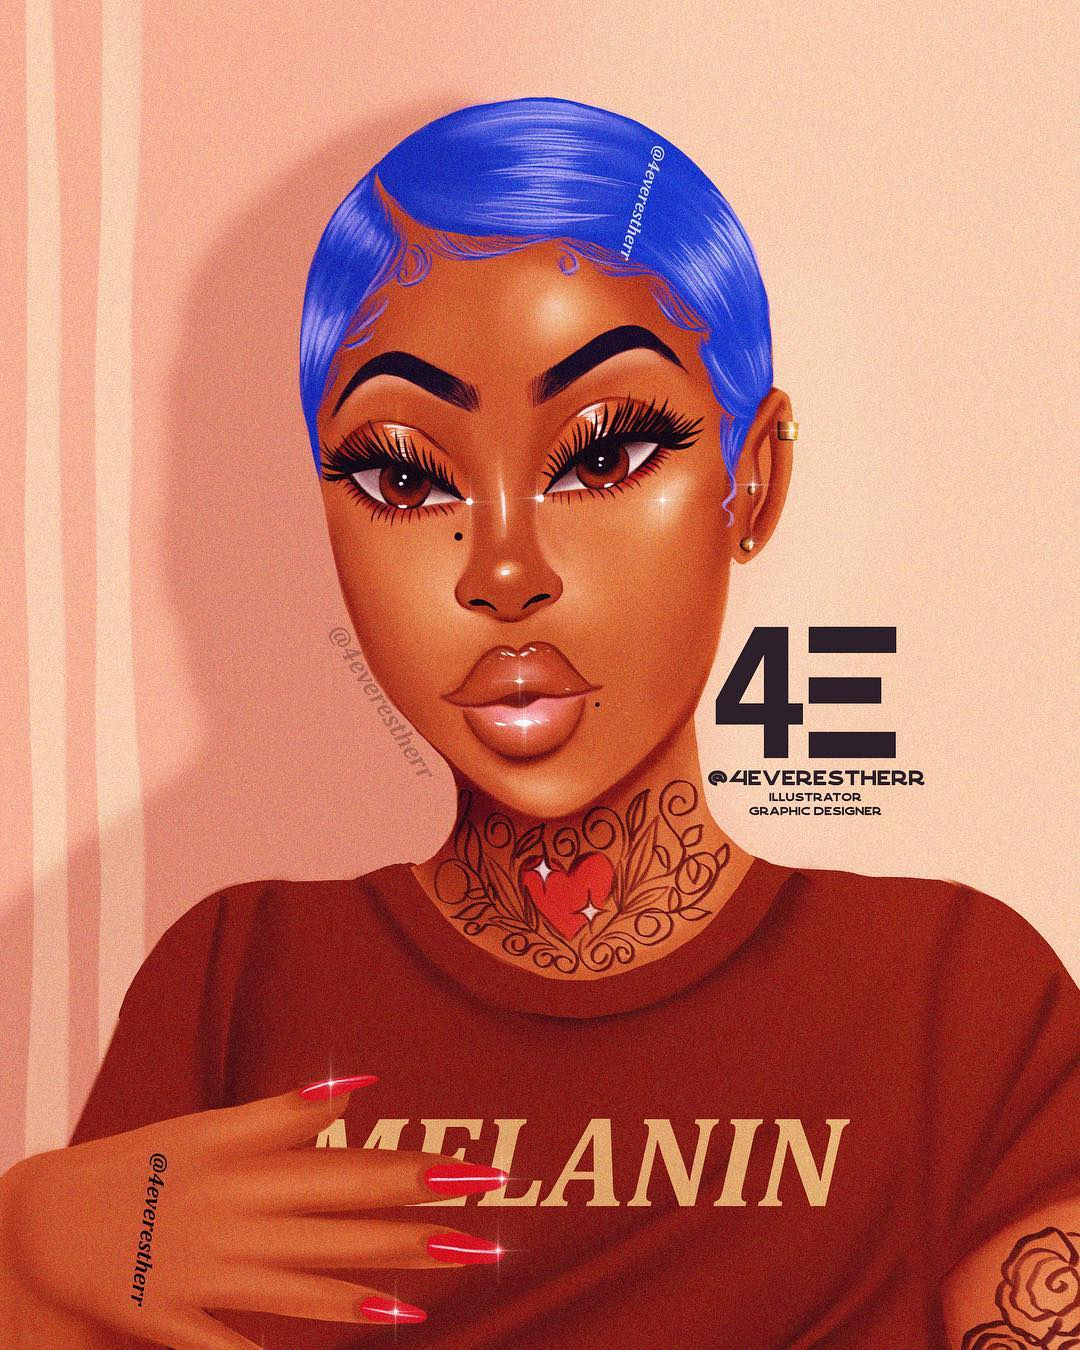 12 Black Illustrators to Follow On Instasgram in 2019